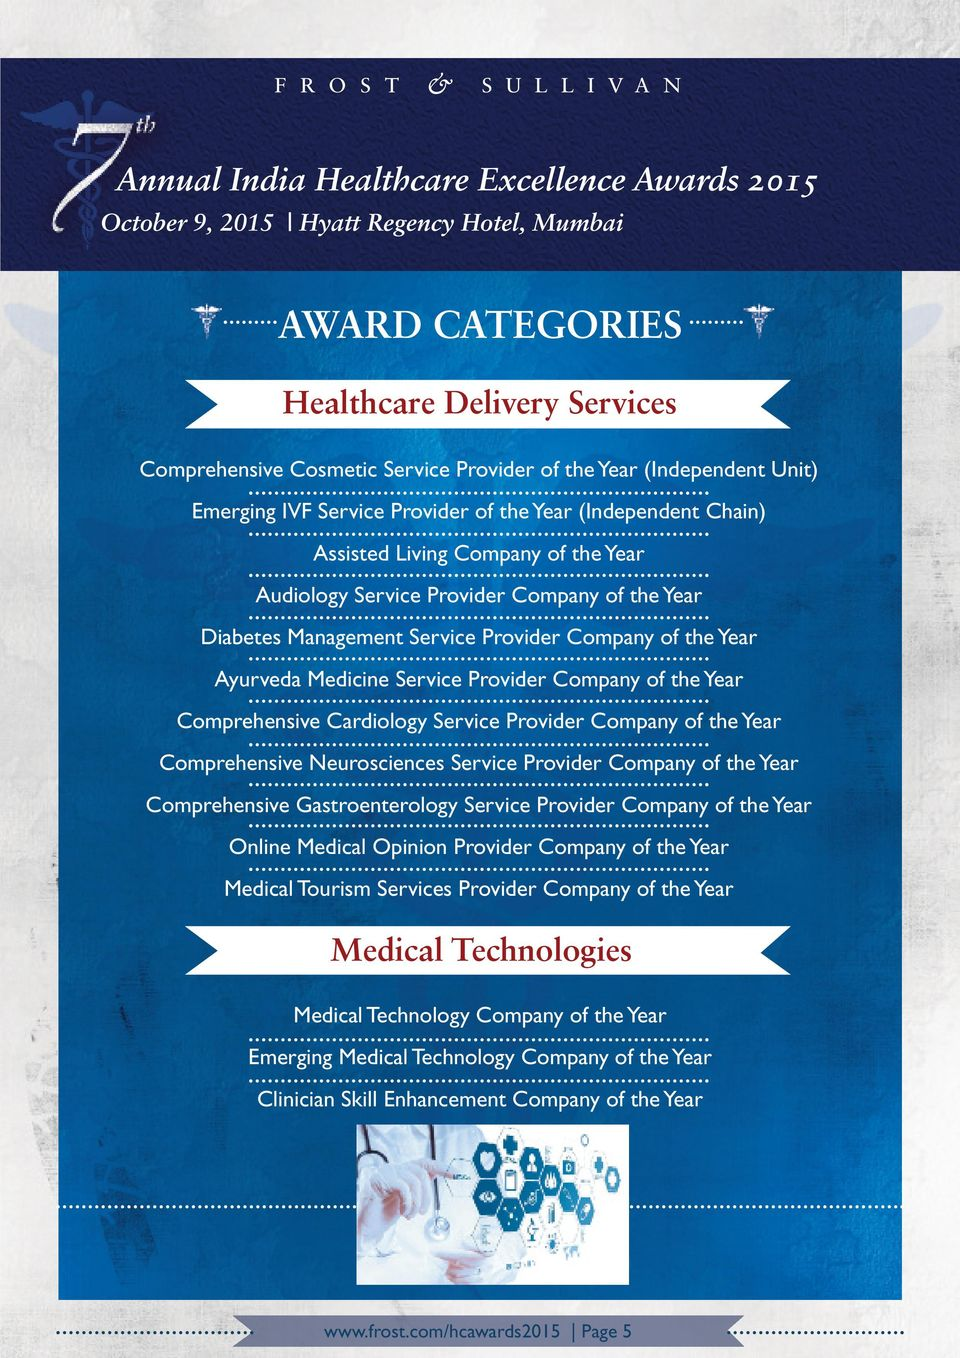 Cardiology Service Provider Company of the Year Comprehensive Neurosciences Service Provider Company of the Year Comprehensive Gastroenterology Service Provider Company of the Year Online Medical